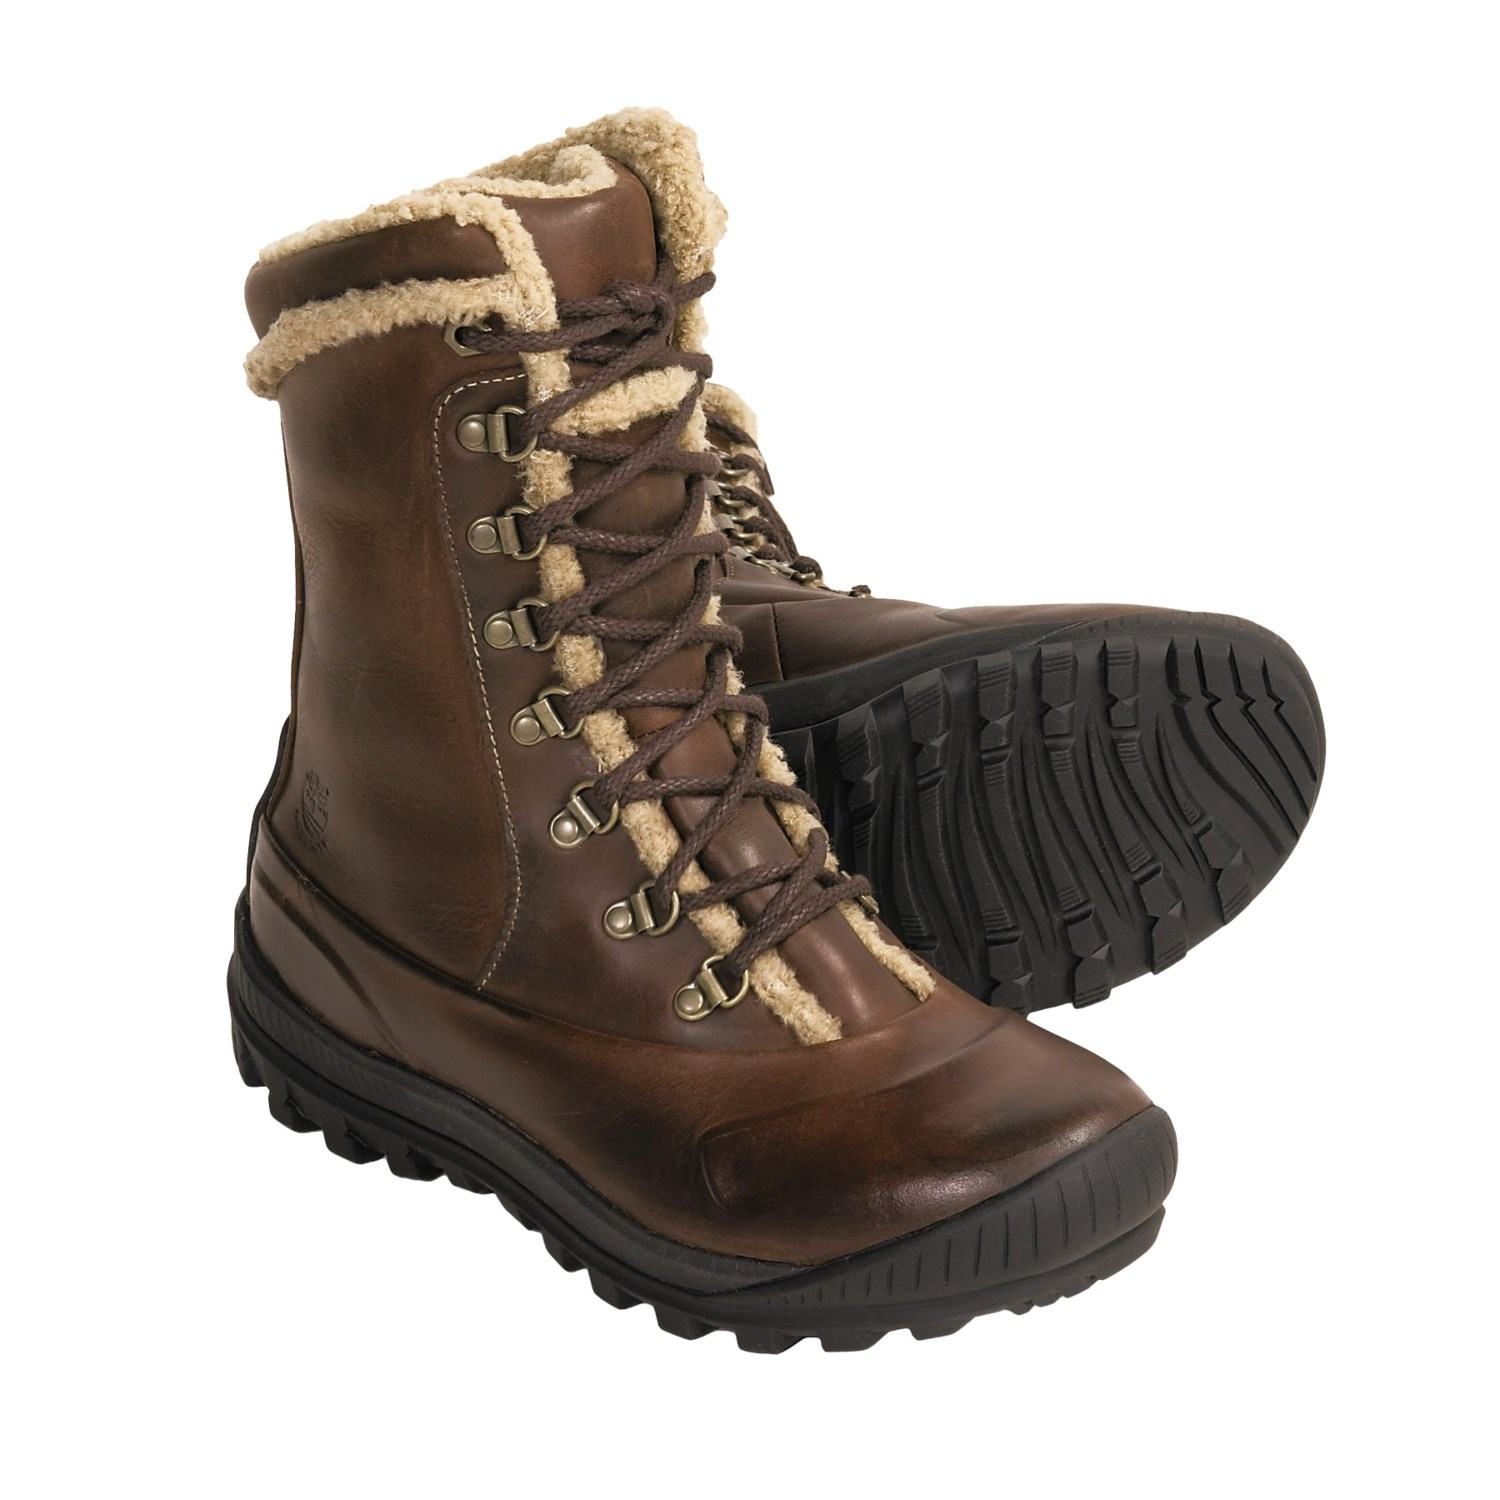 Timberland Mount Holly Winter Boots (For Women) 3379X